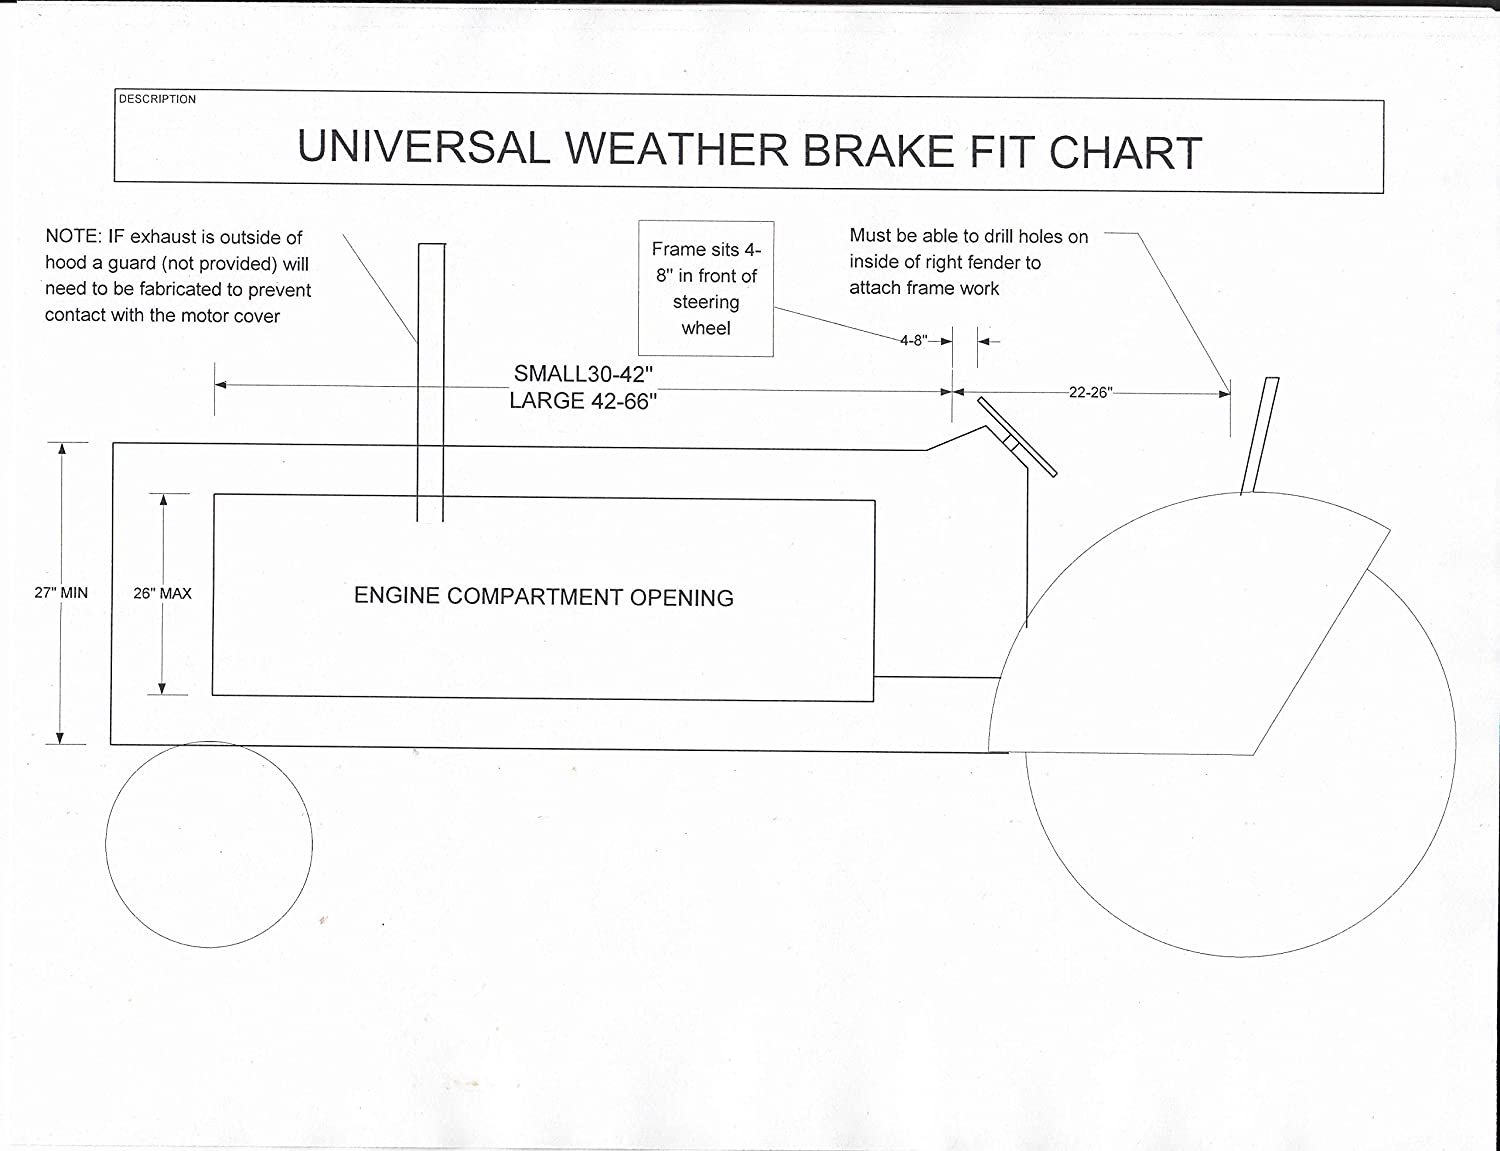 20v w diesel engine diagram amazon com tractor heat houser or weather brake universal small  tractor heat houser or weather brake